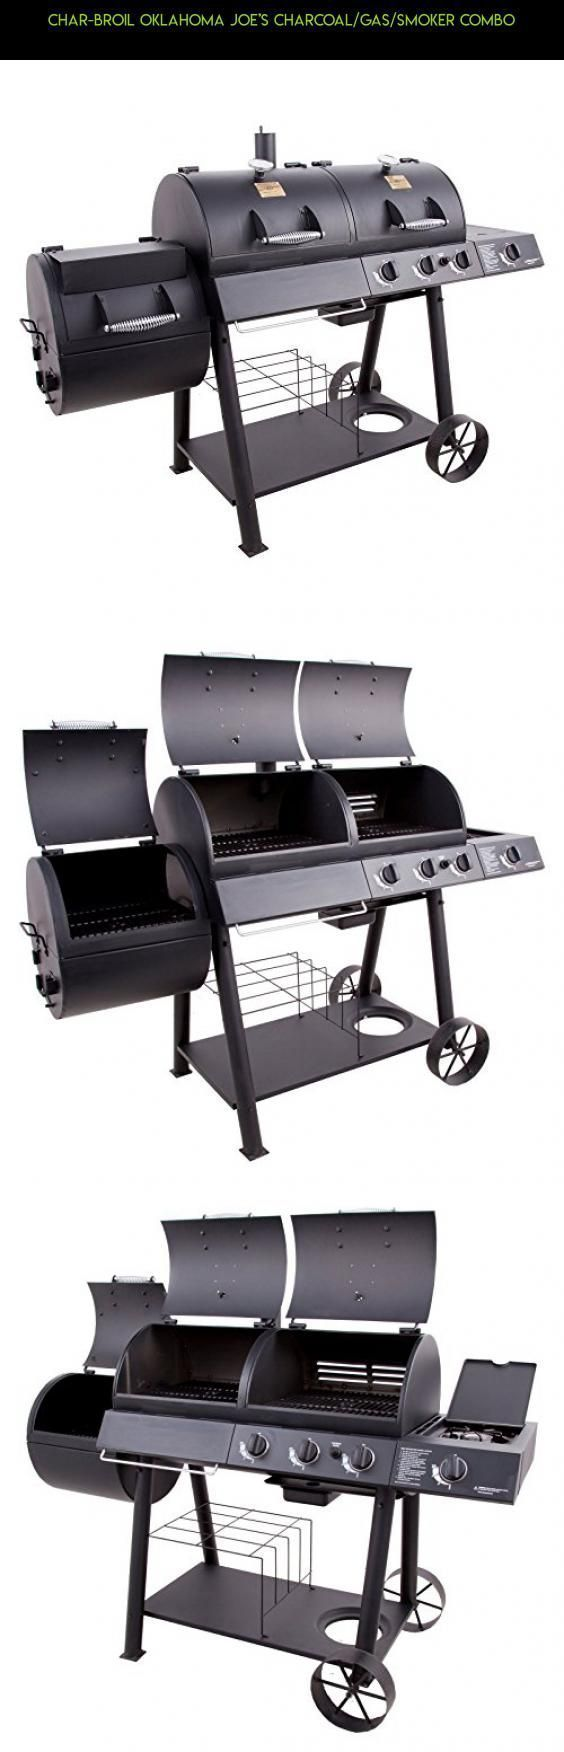 Char-Broil Oklahoma Joe's Charcoal/Gas/Smoker Combo #drone #racing #shopping #gadgets #gas #grills #combo #and #charcoal #parts #fpv #tech #technology #plans #camera #products #kit